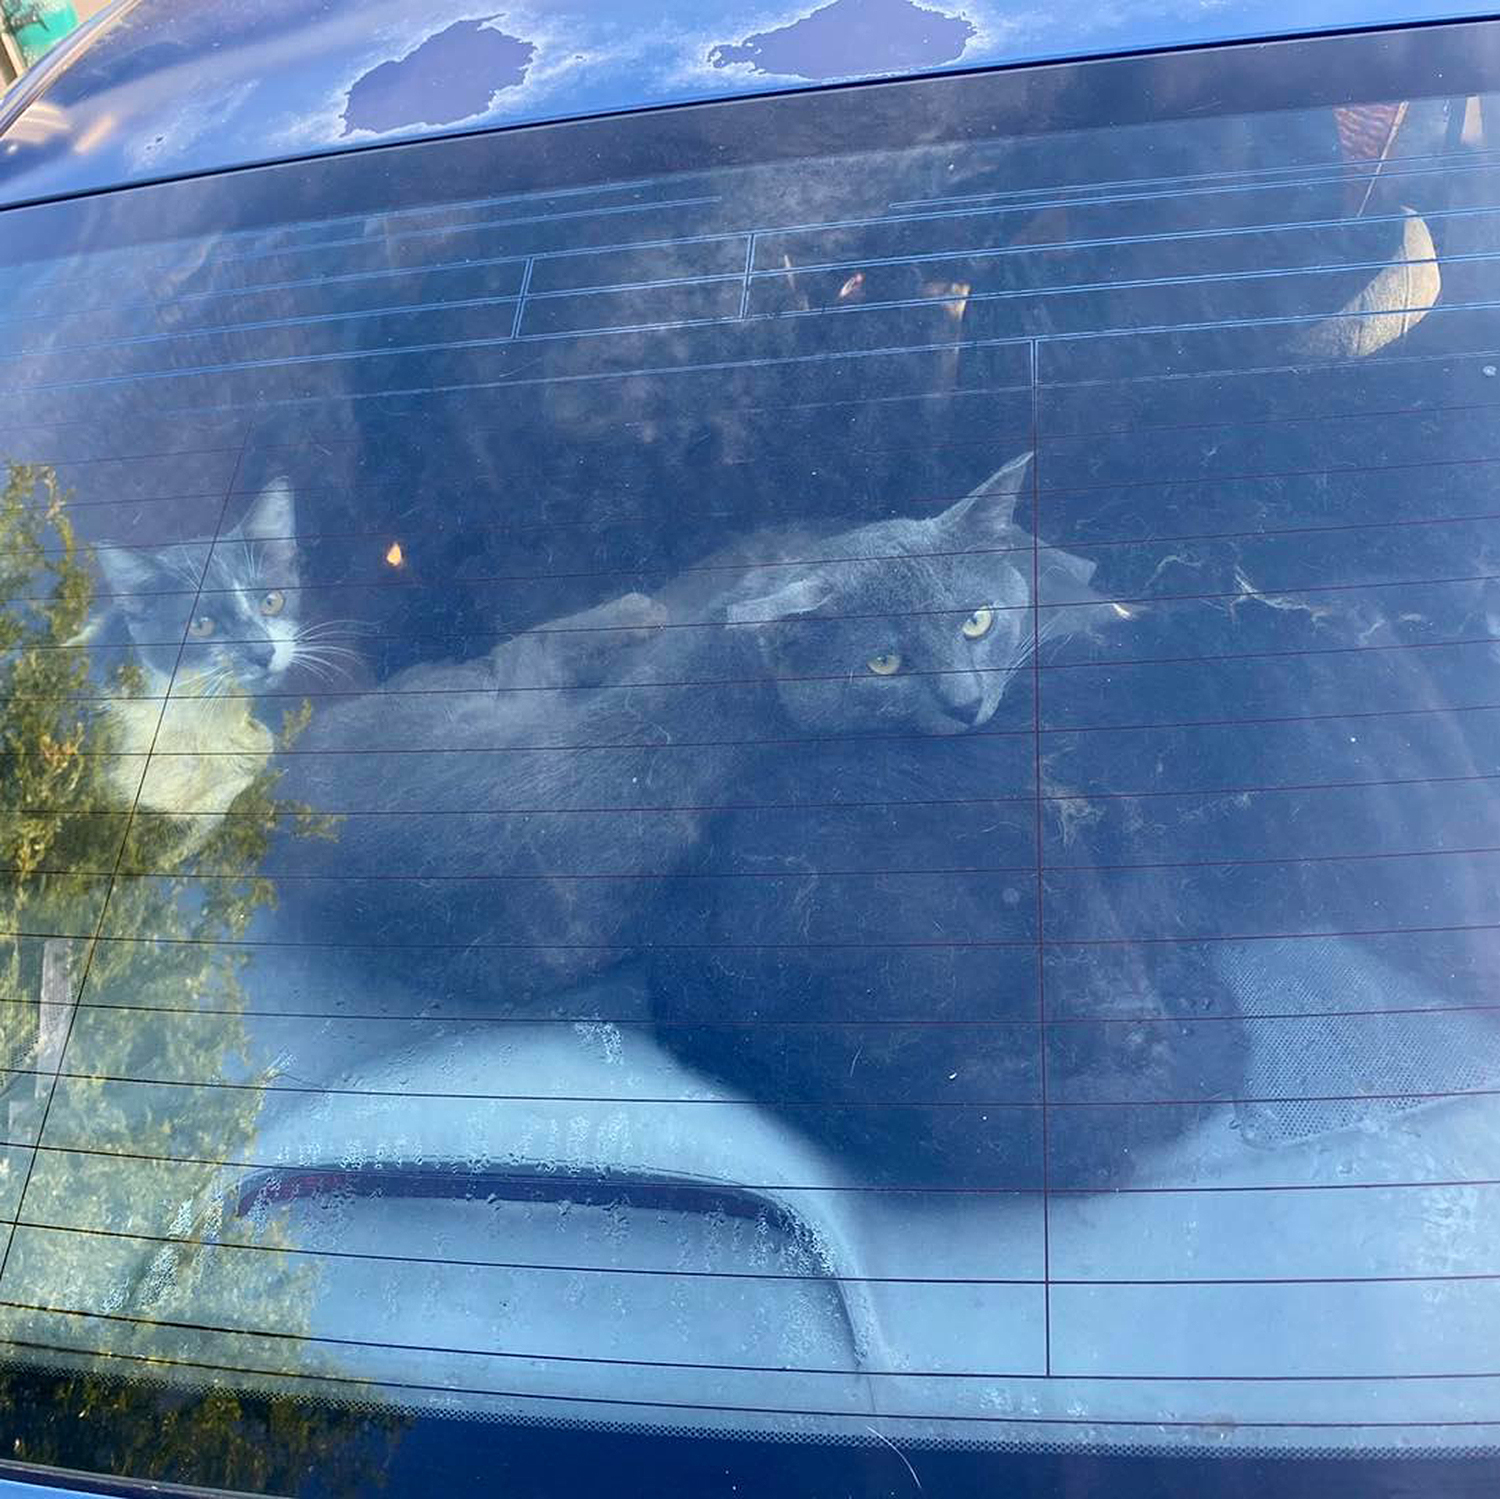 cats rescued from hot car